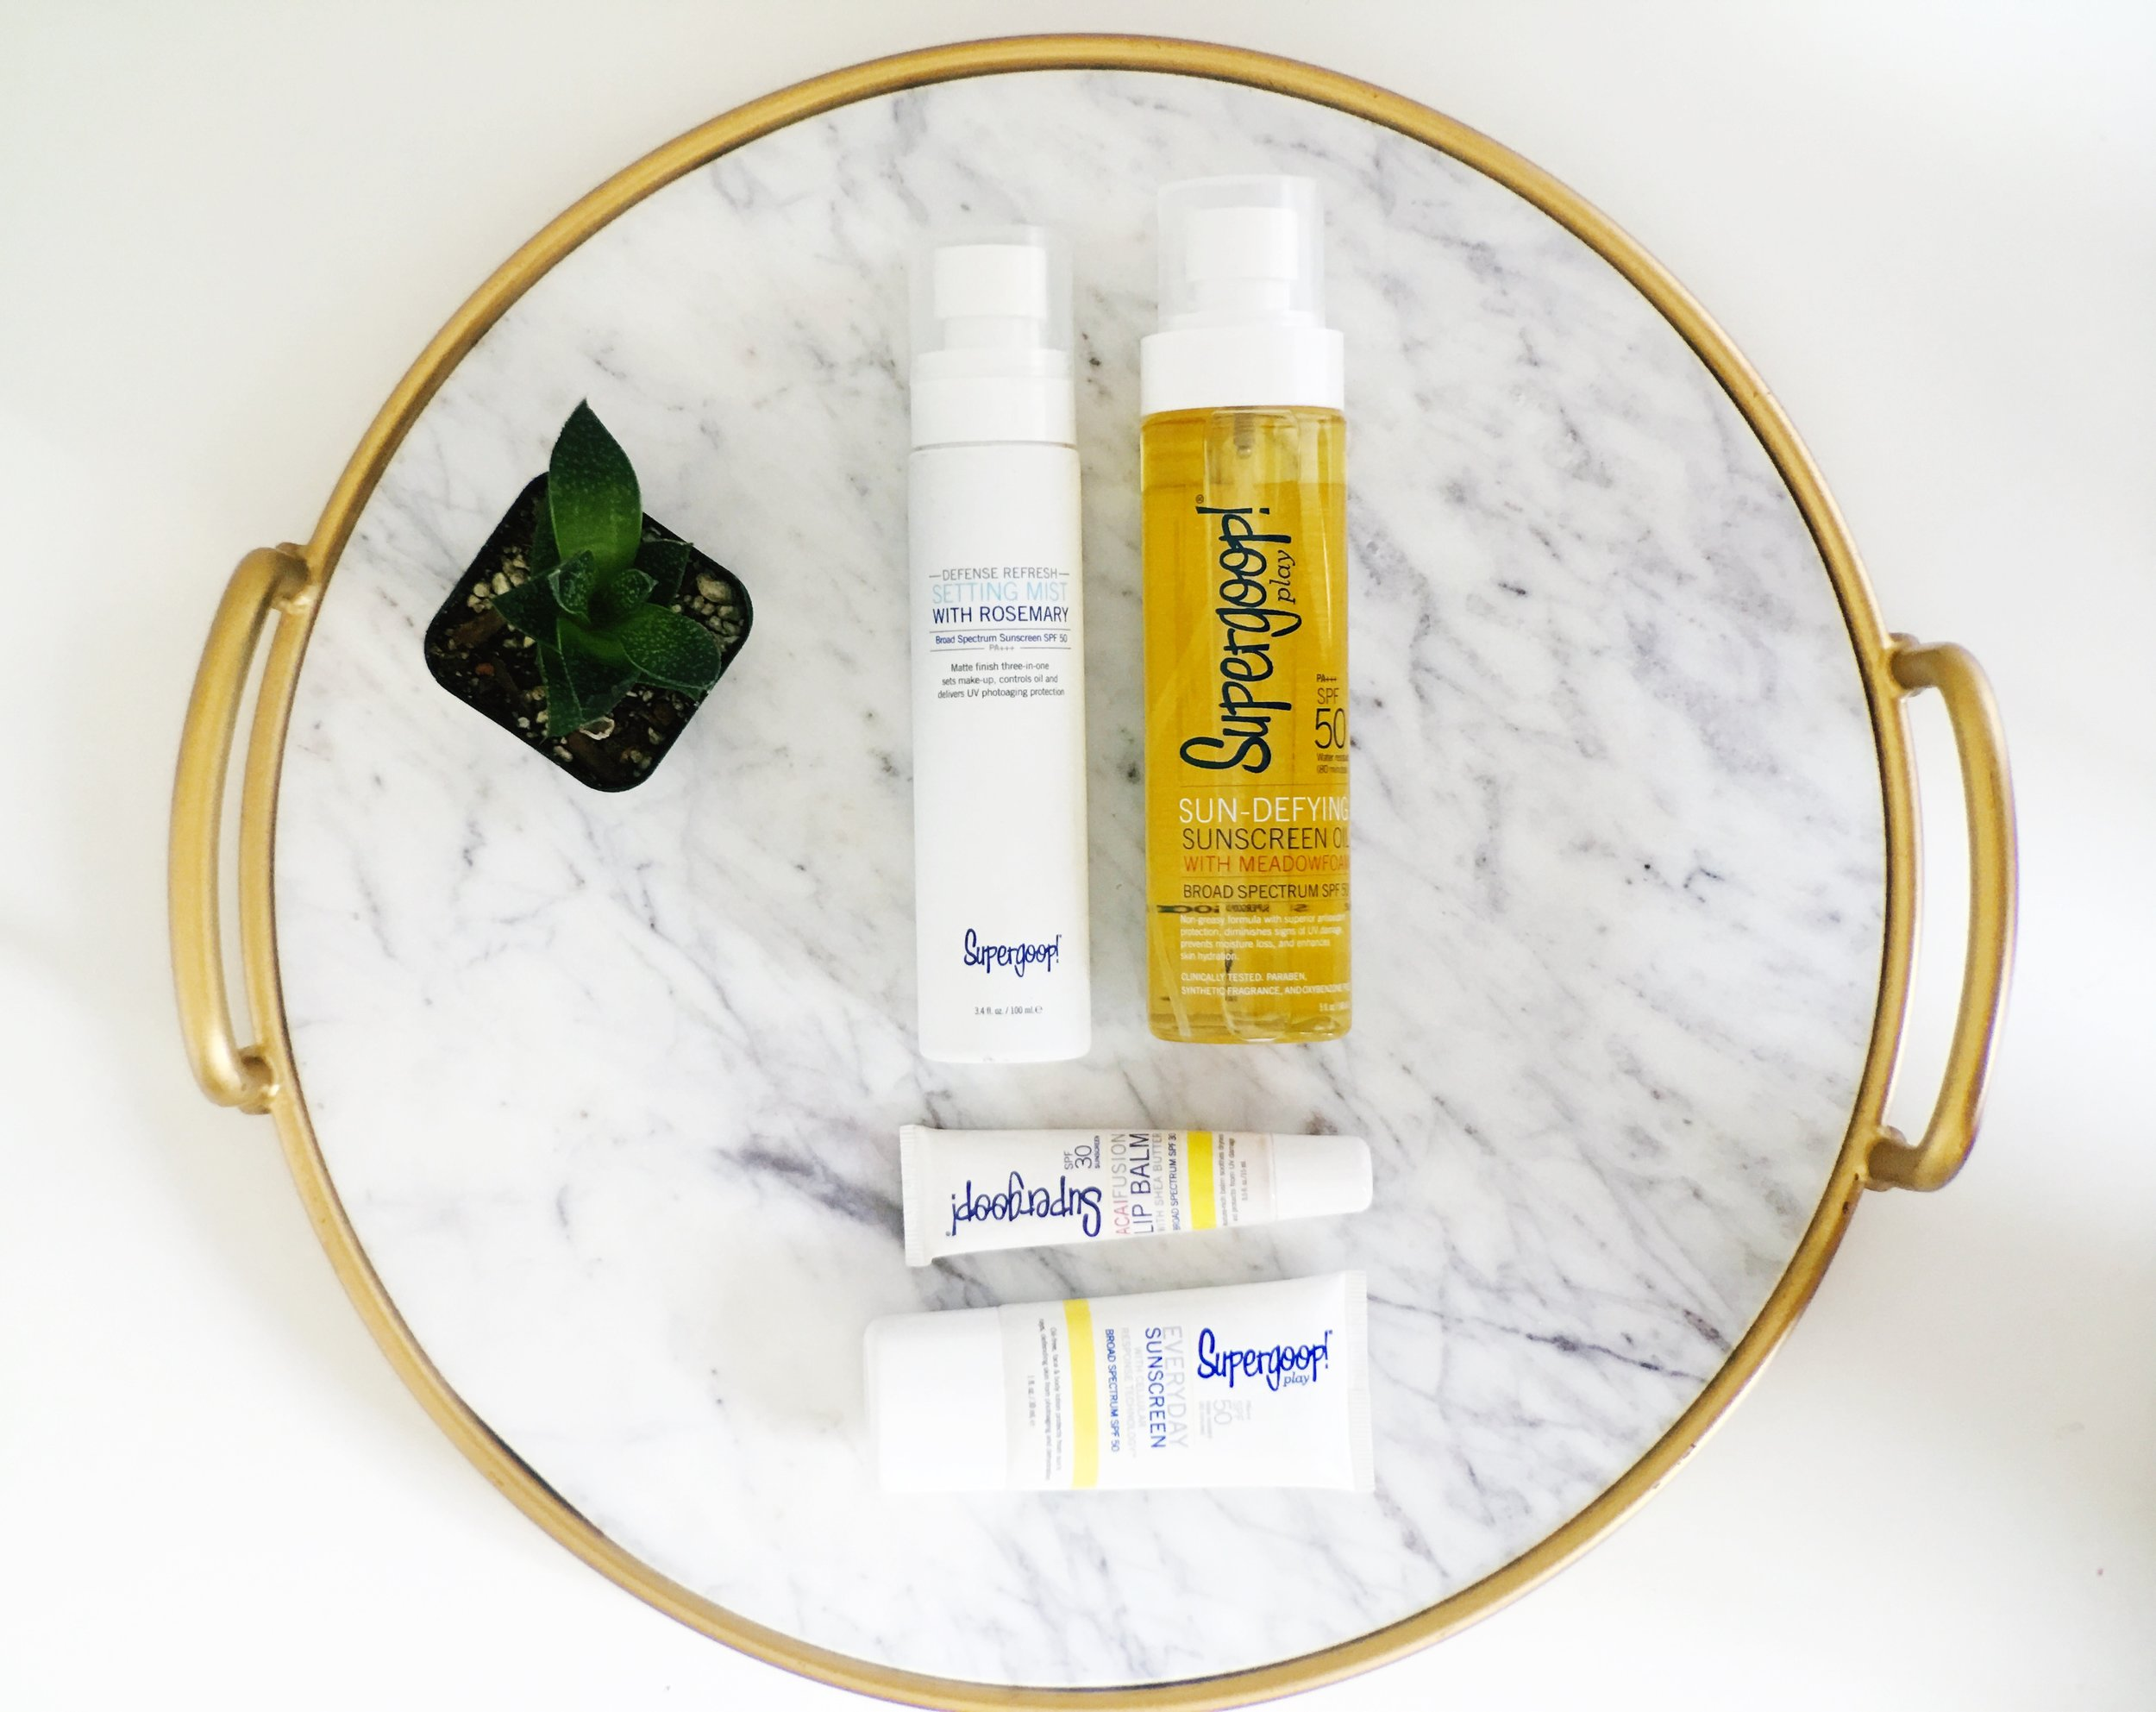 SuperGoop Sun Block products including Sunscreen oil, setting mist spray, lip balm and face sunscreen.